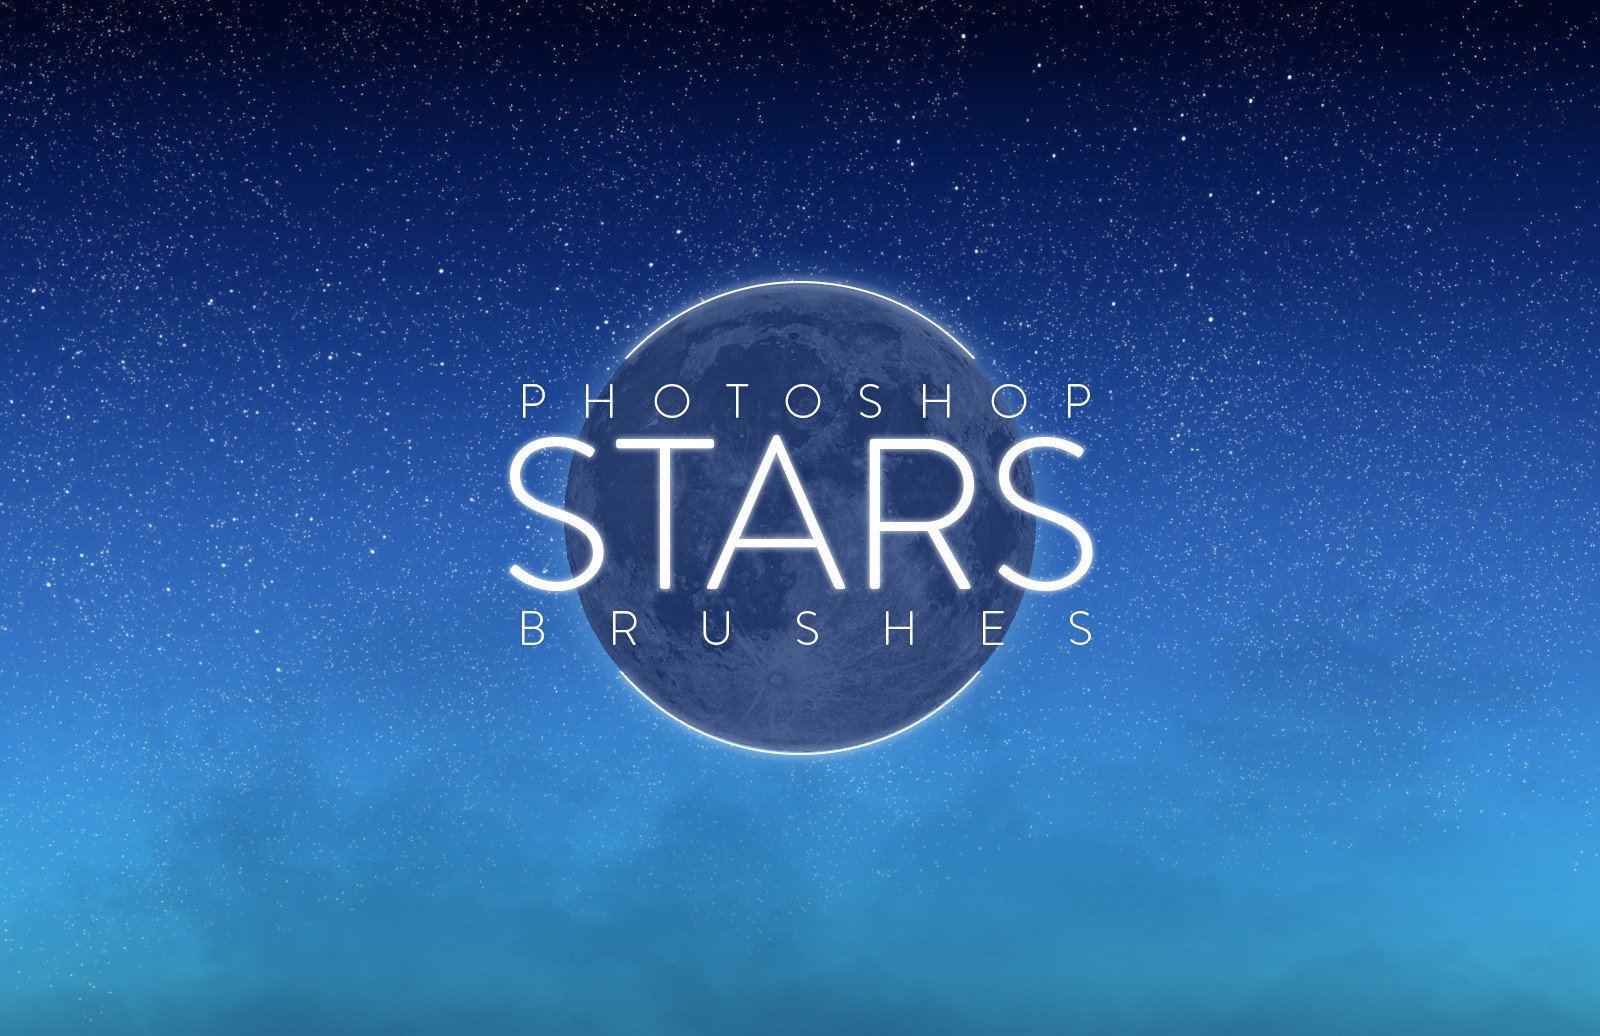 Photoshop Stars Brushes